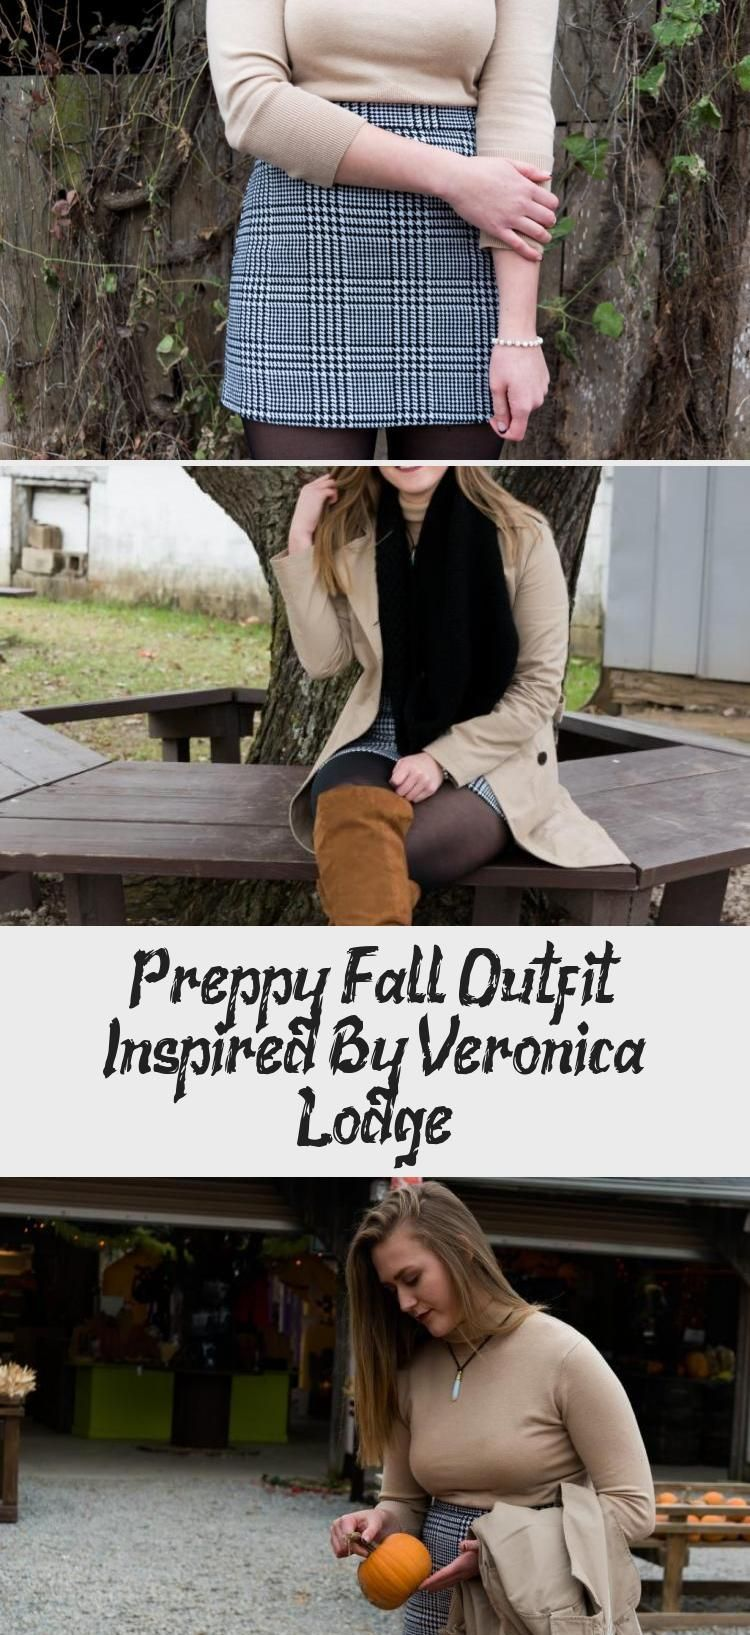 pumpkin patch outfit fall veronican lodge thanksgiving outfit idea #thanksgivingoutfitComfy #Matchingthanksgivingoutfit #thanksgivingoutfitWomen #thanksgivingoutfitCalifornia #Comfortablethanksgivingoutfit #pumpkinpatchoutfitwomen